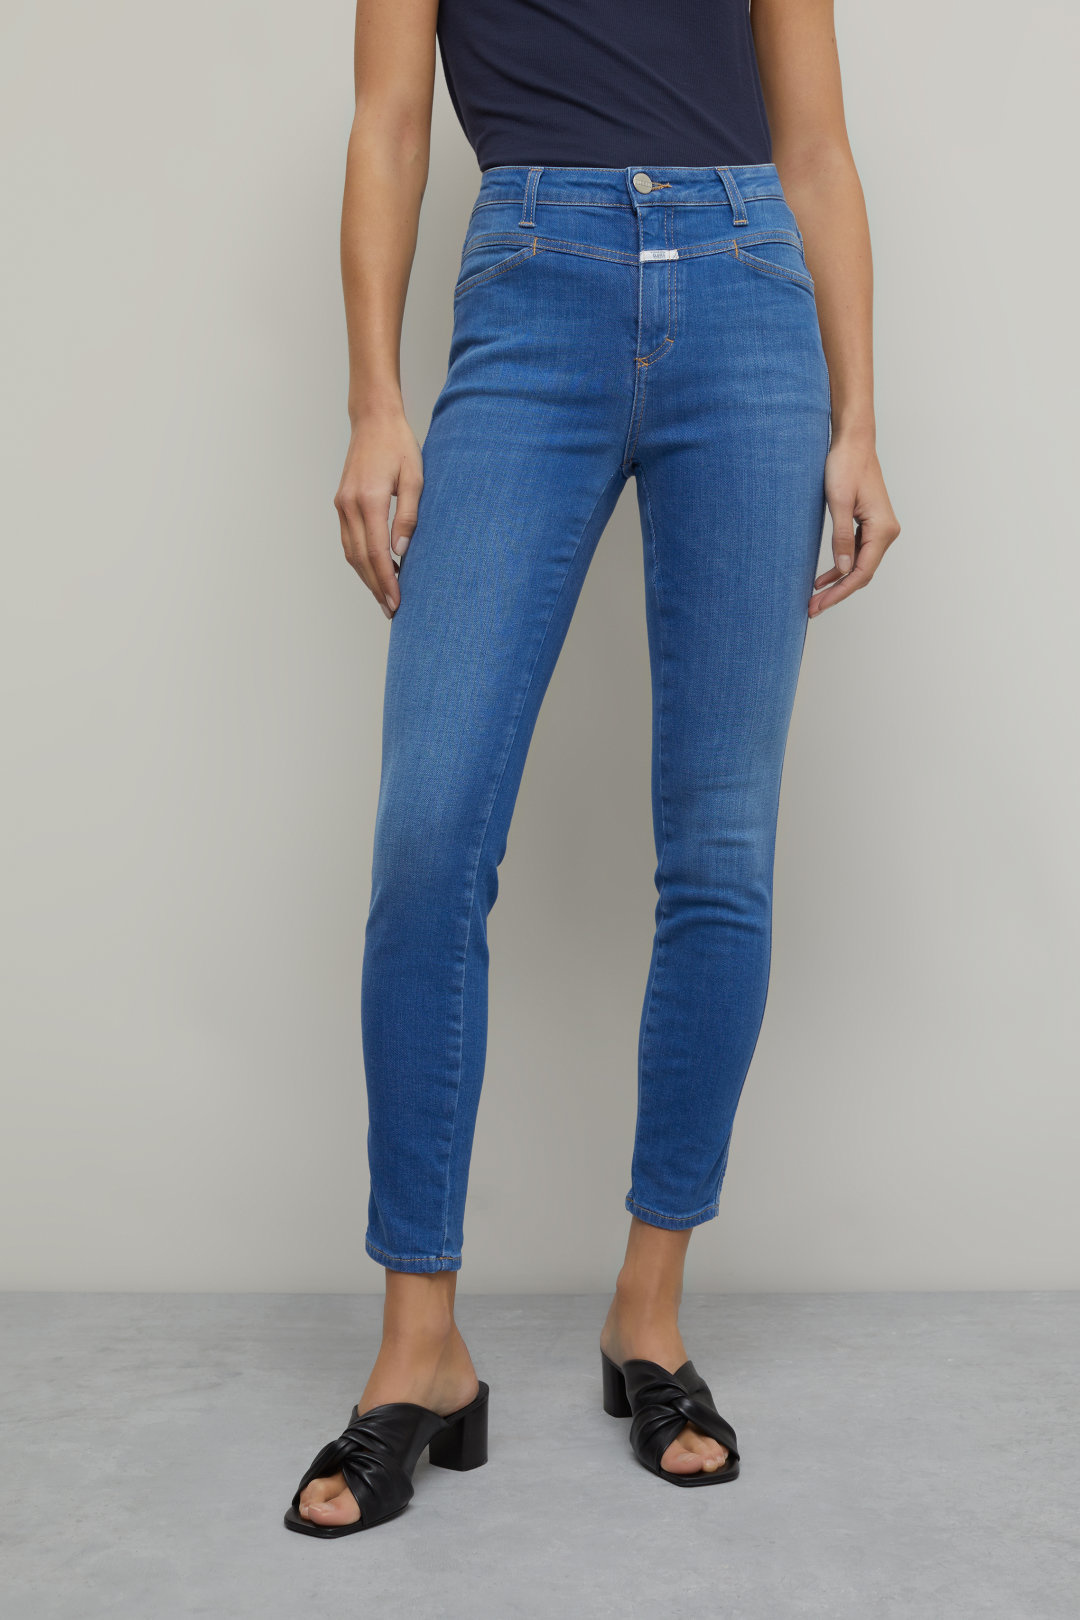 Closed Jeans C91231 08T 9V-1